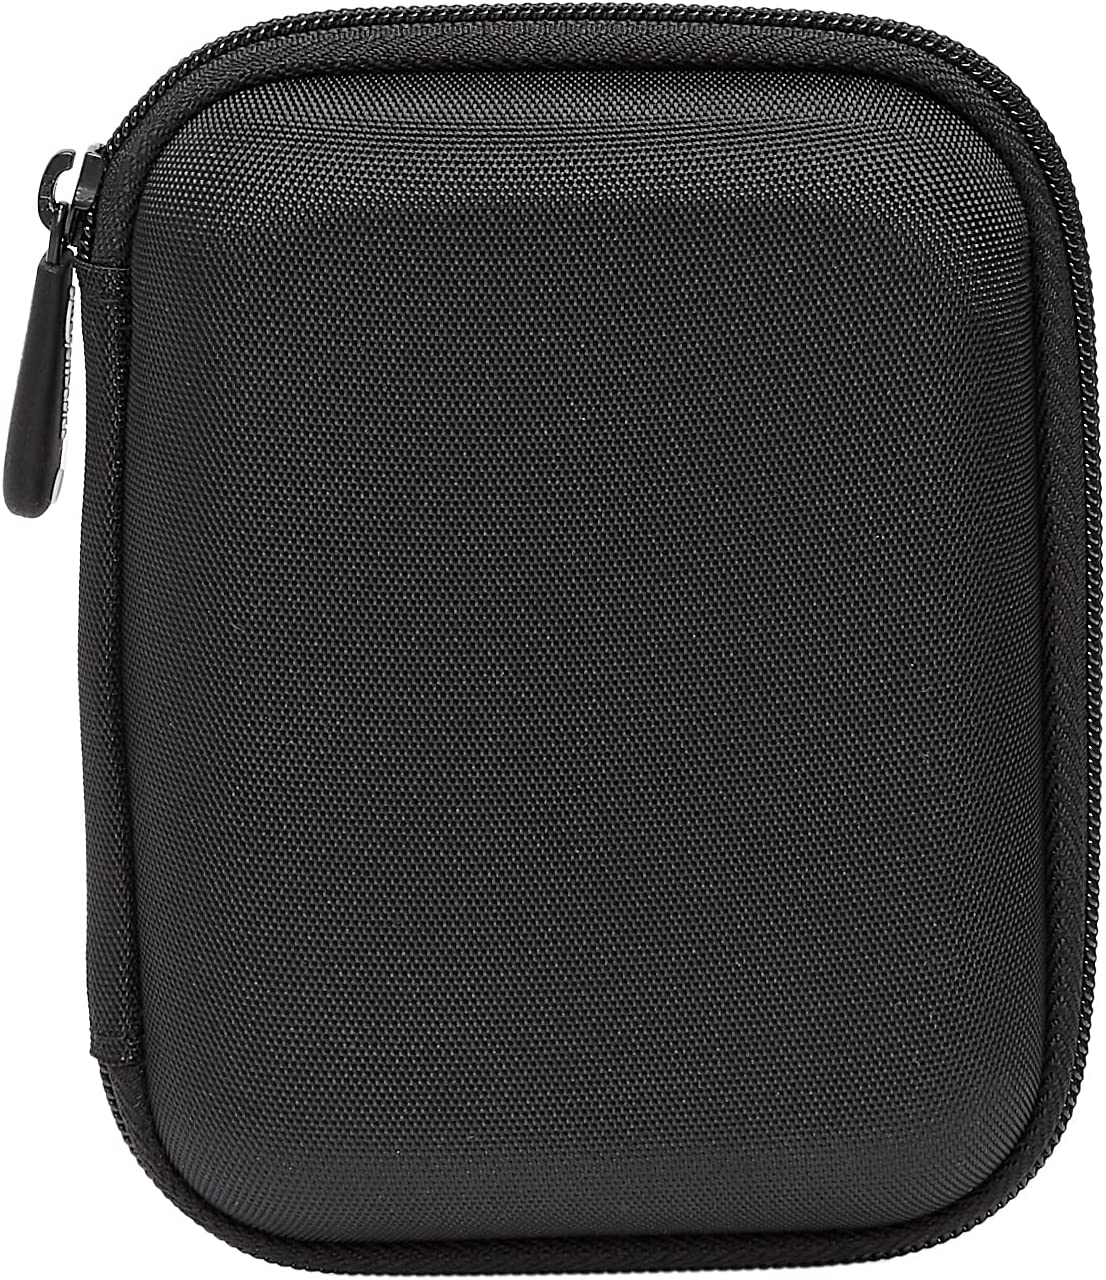 Amazon Basics Small Hard Shell Carrying Case for My Passport Essential External Hard Drive